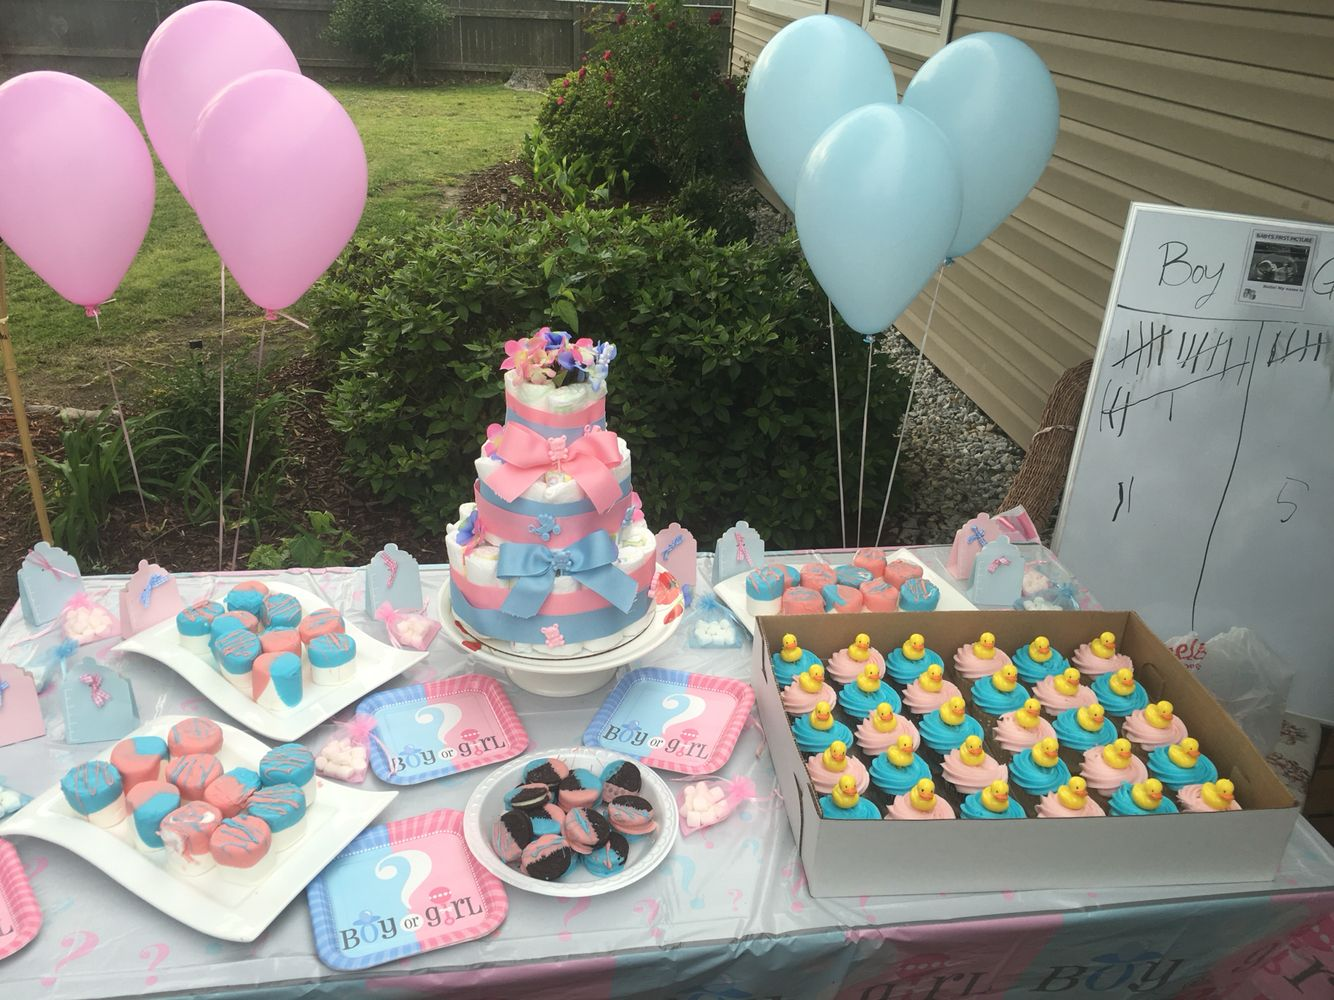 Affordable Gender Reveal Party Walmart Decorations And Sam S Club Cupcakes And Dollar Tree Favors Baby Shower Cakes Gender Reveal Decorations Shower Cakes